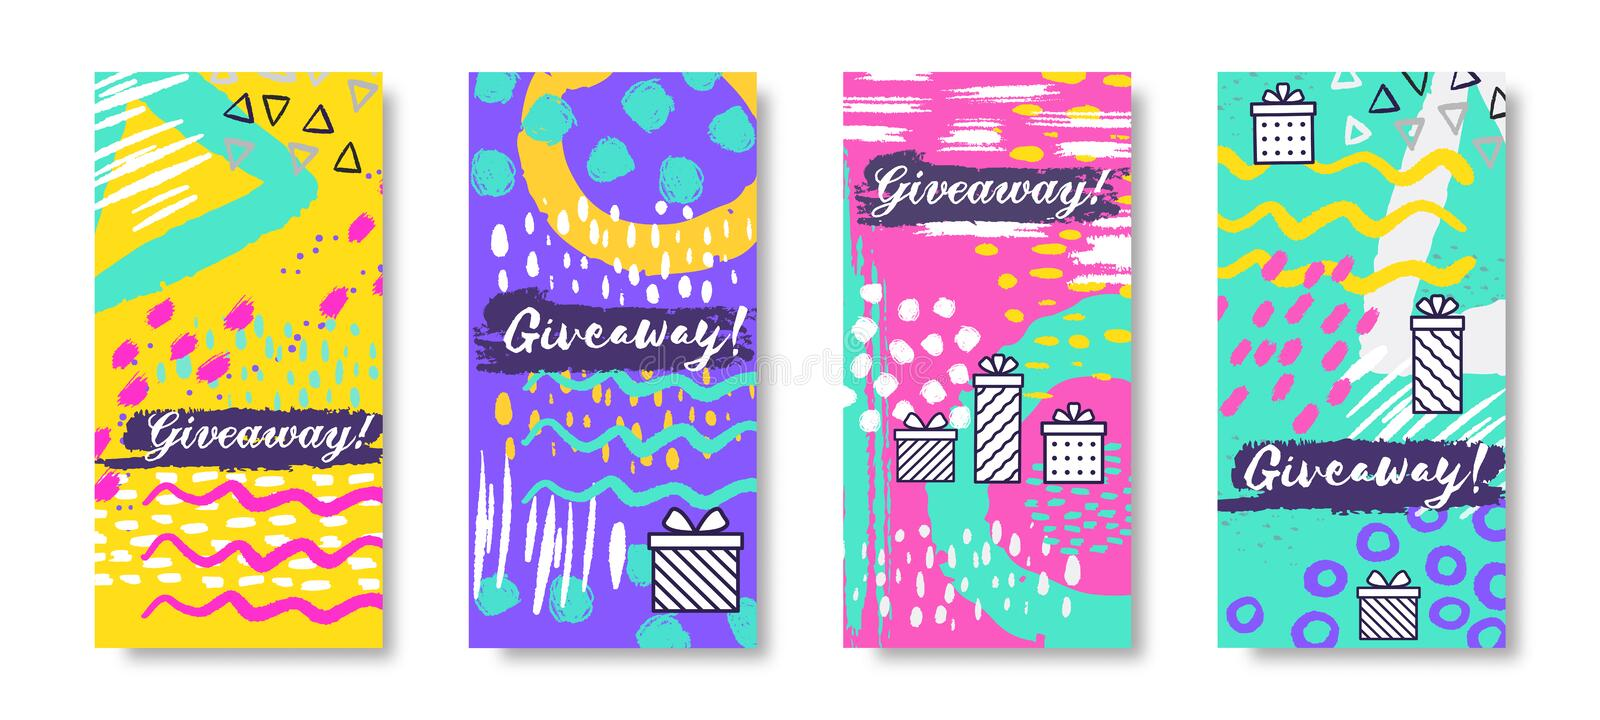 Social media banners. Giveaway fashion story frames, trendy sale post. Vector gift boxes and winning prizes concept royalty free illustration